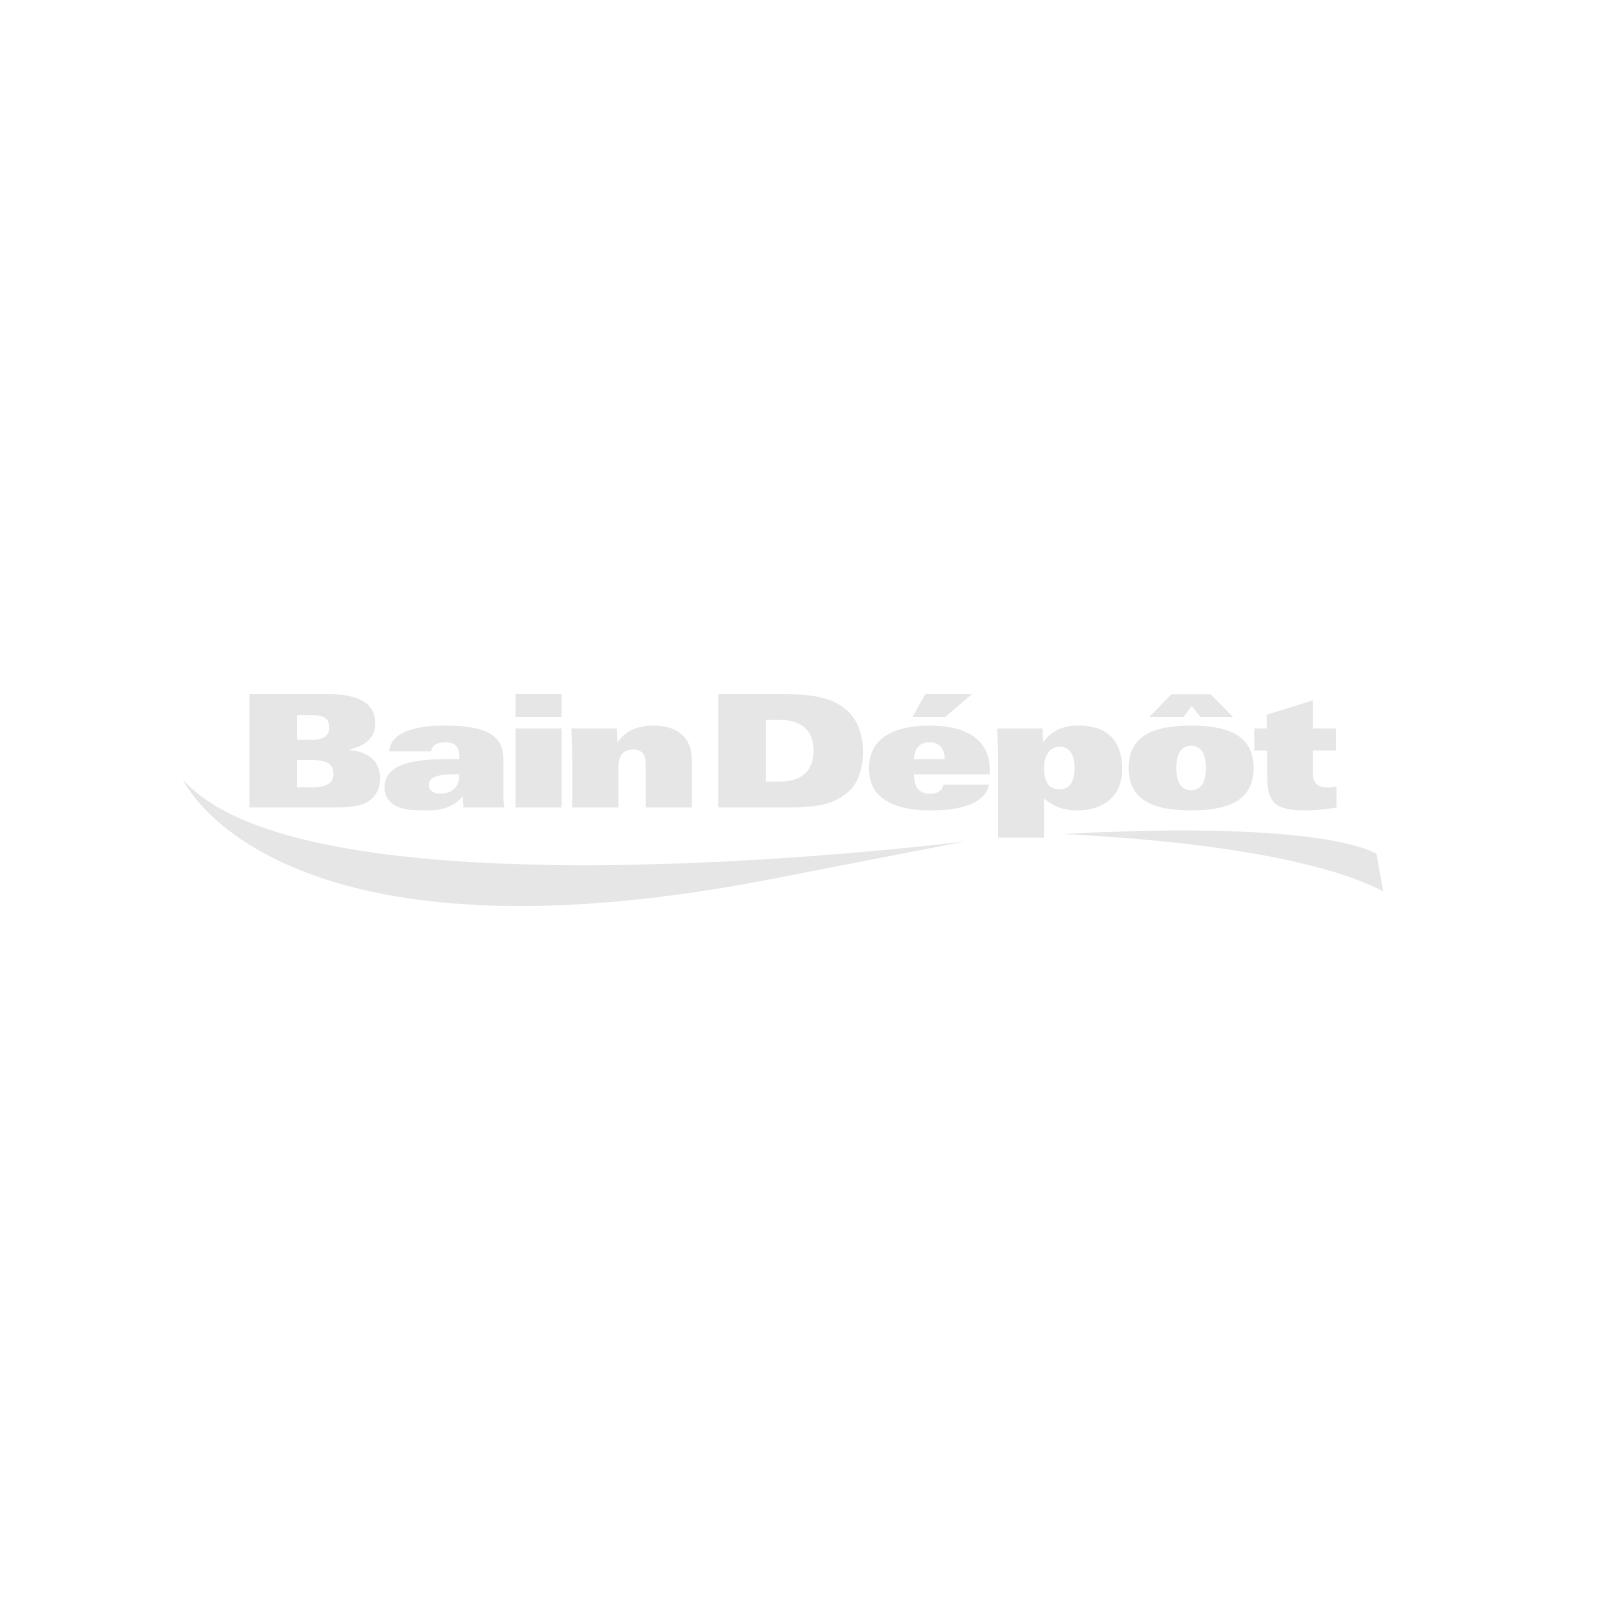 "48"" x 36"" rectangular shower base for universal installation with linear drain included"